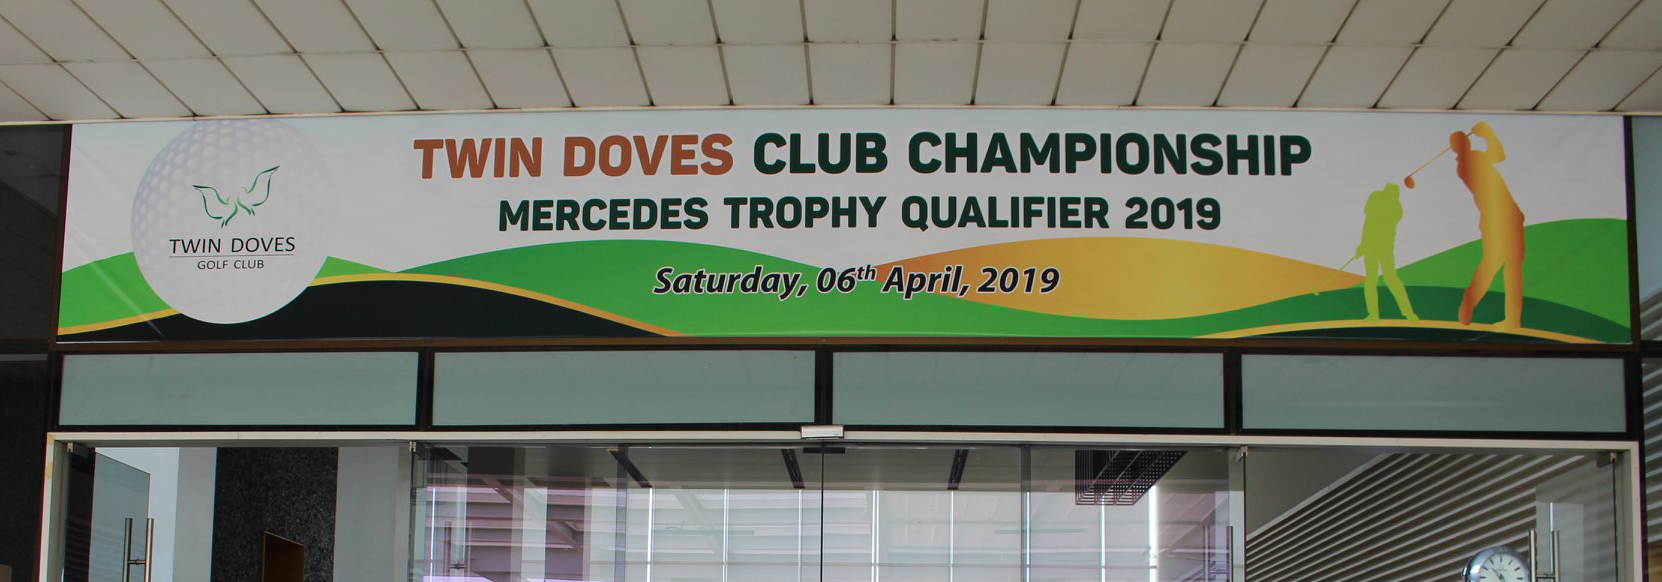 Club Championship on 6th April 2019